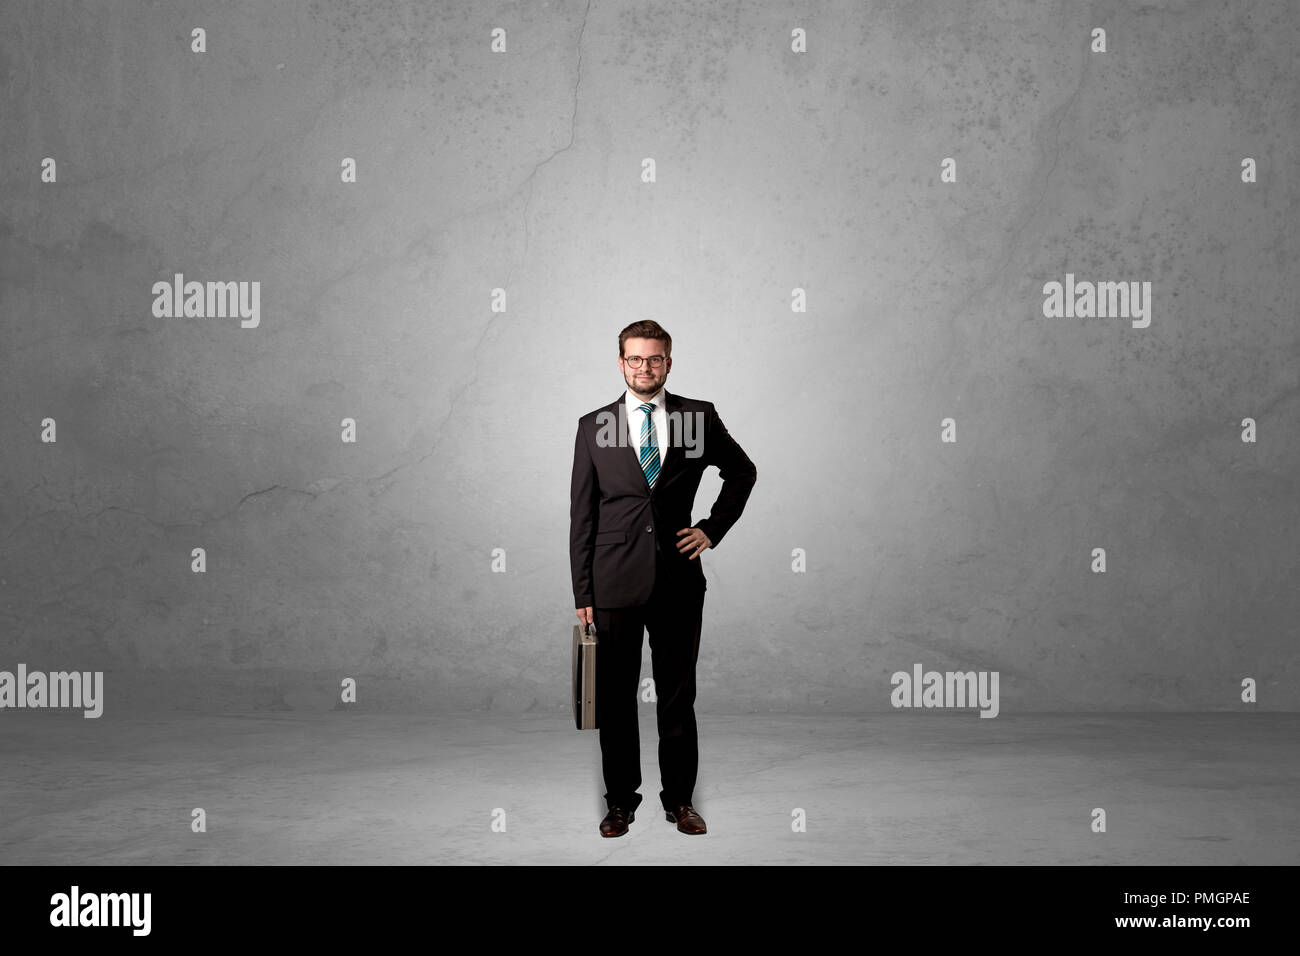 Alone handsome businessman standing in a dark empty room - Stock Image